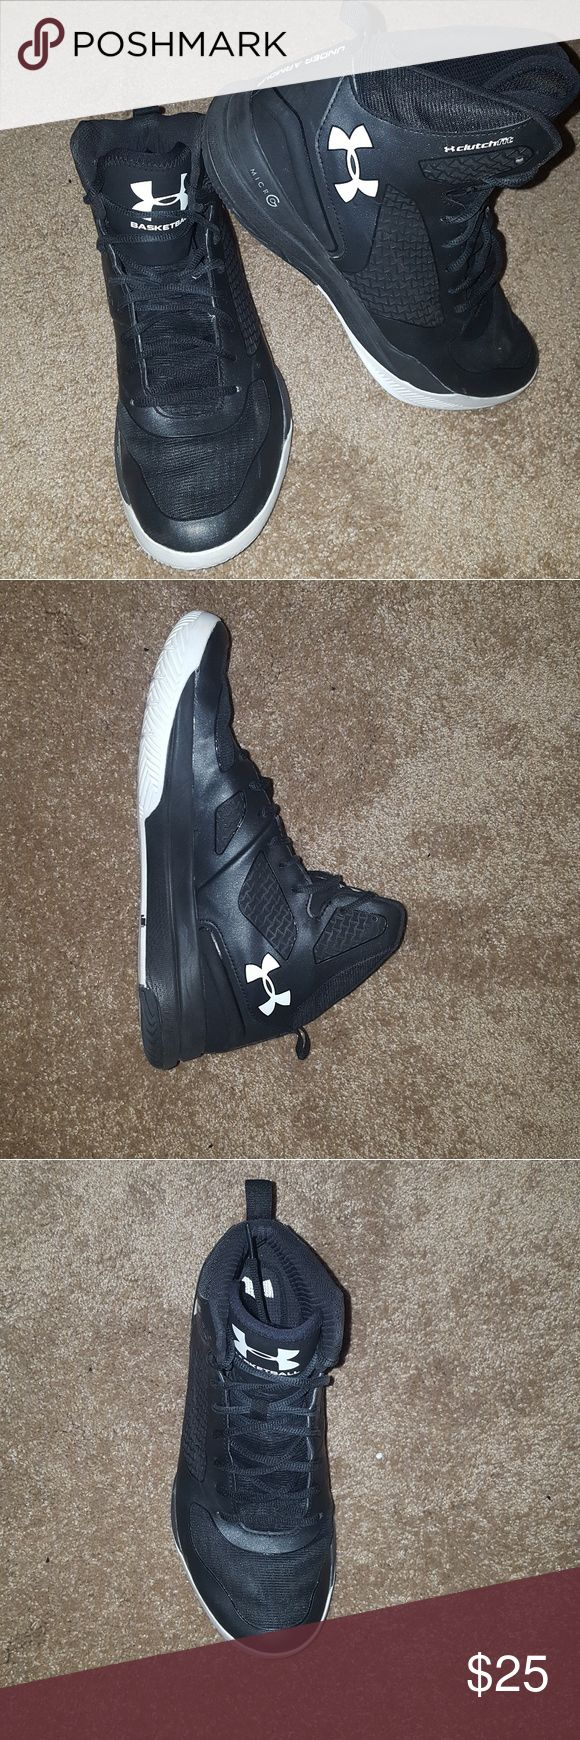 Under Armor Basketball Shoes In great condition, have great traction still, and we're only used a few times!!! Under Armour Shoes Athletic Shoes